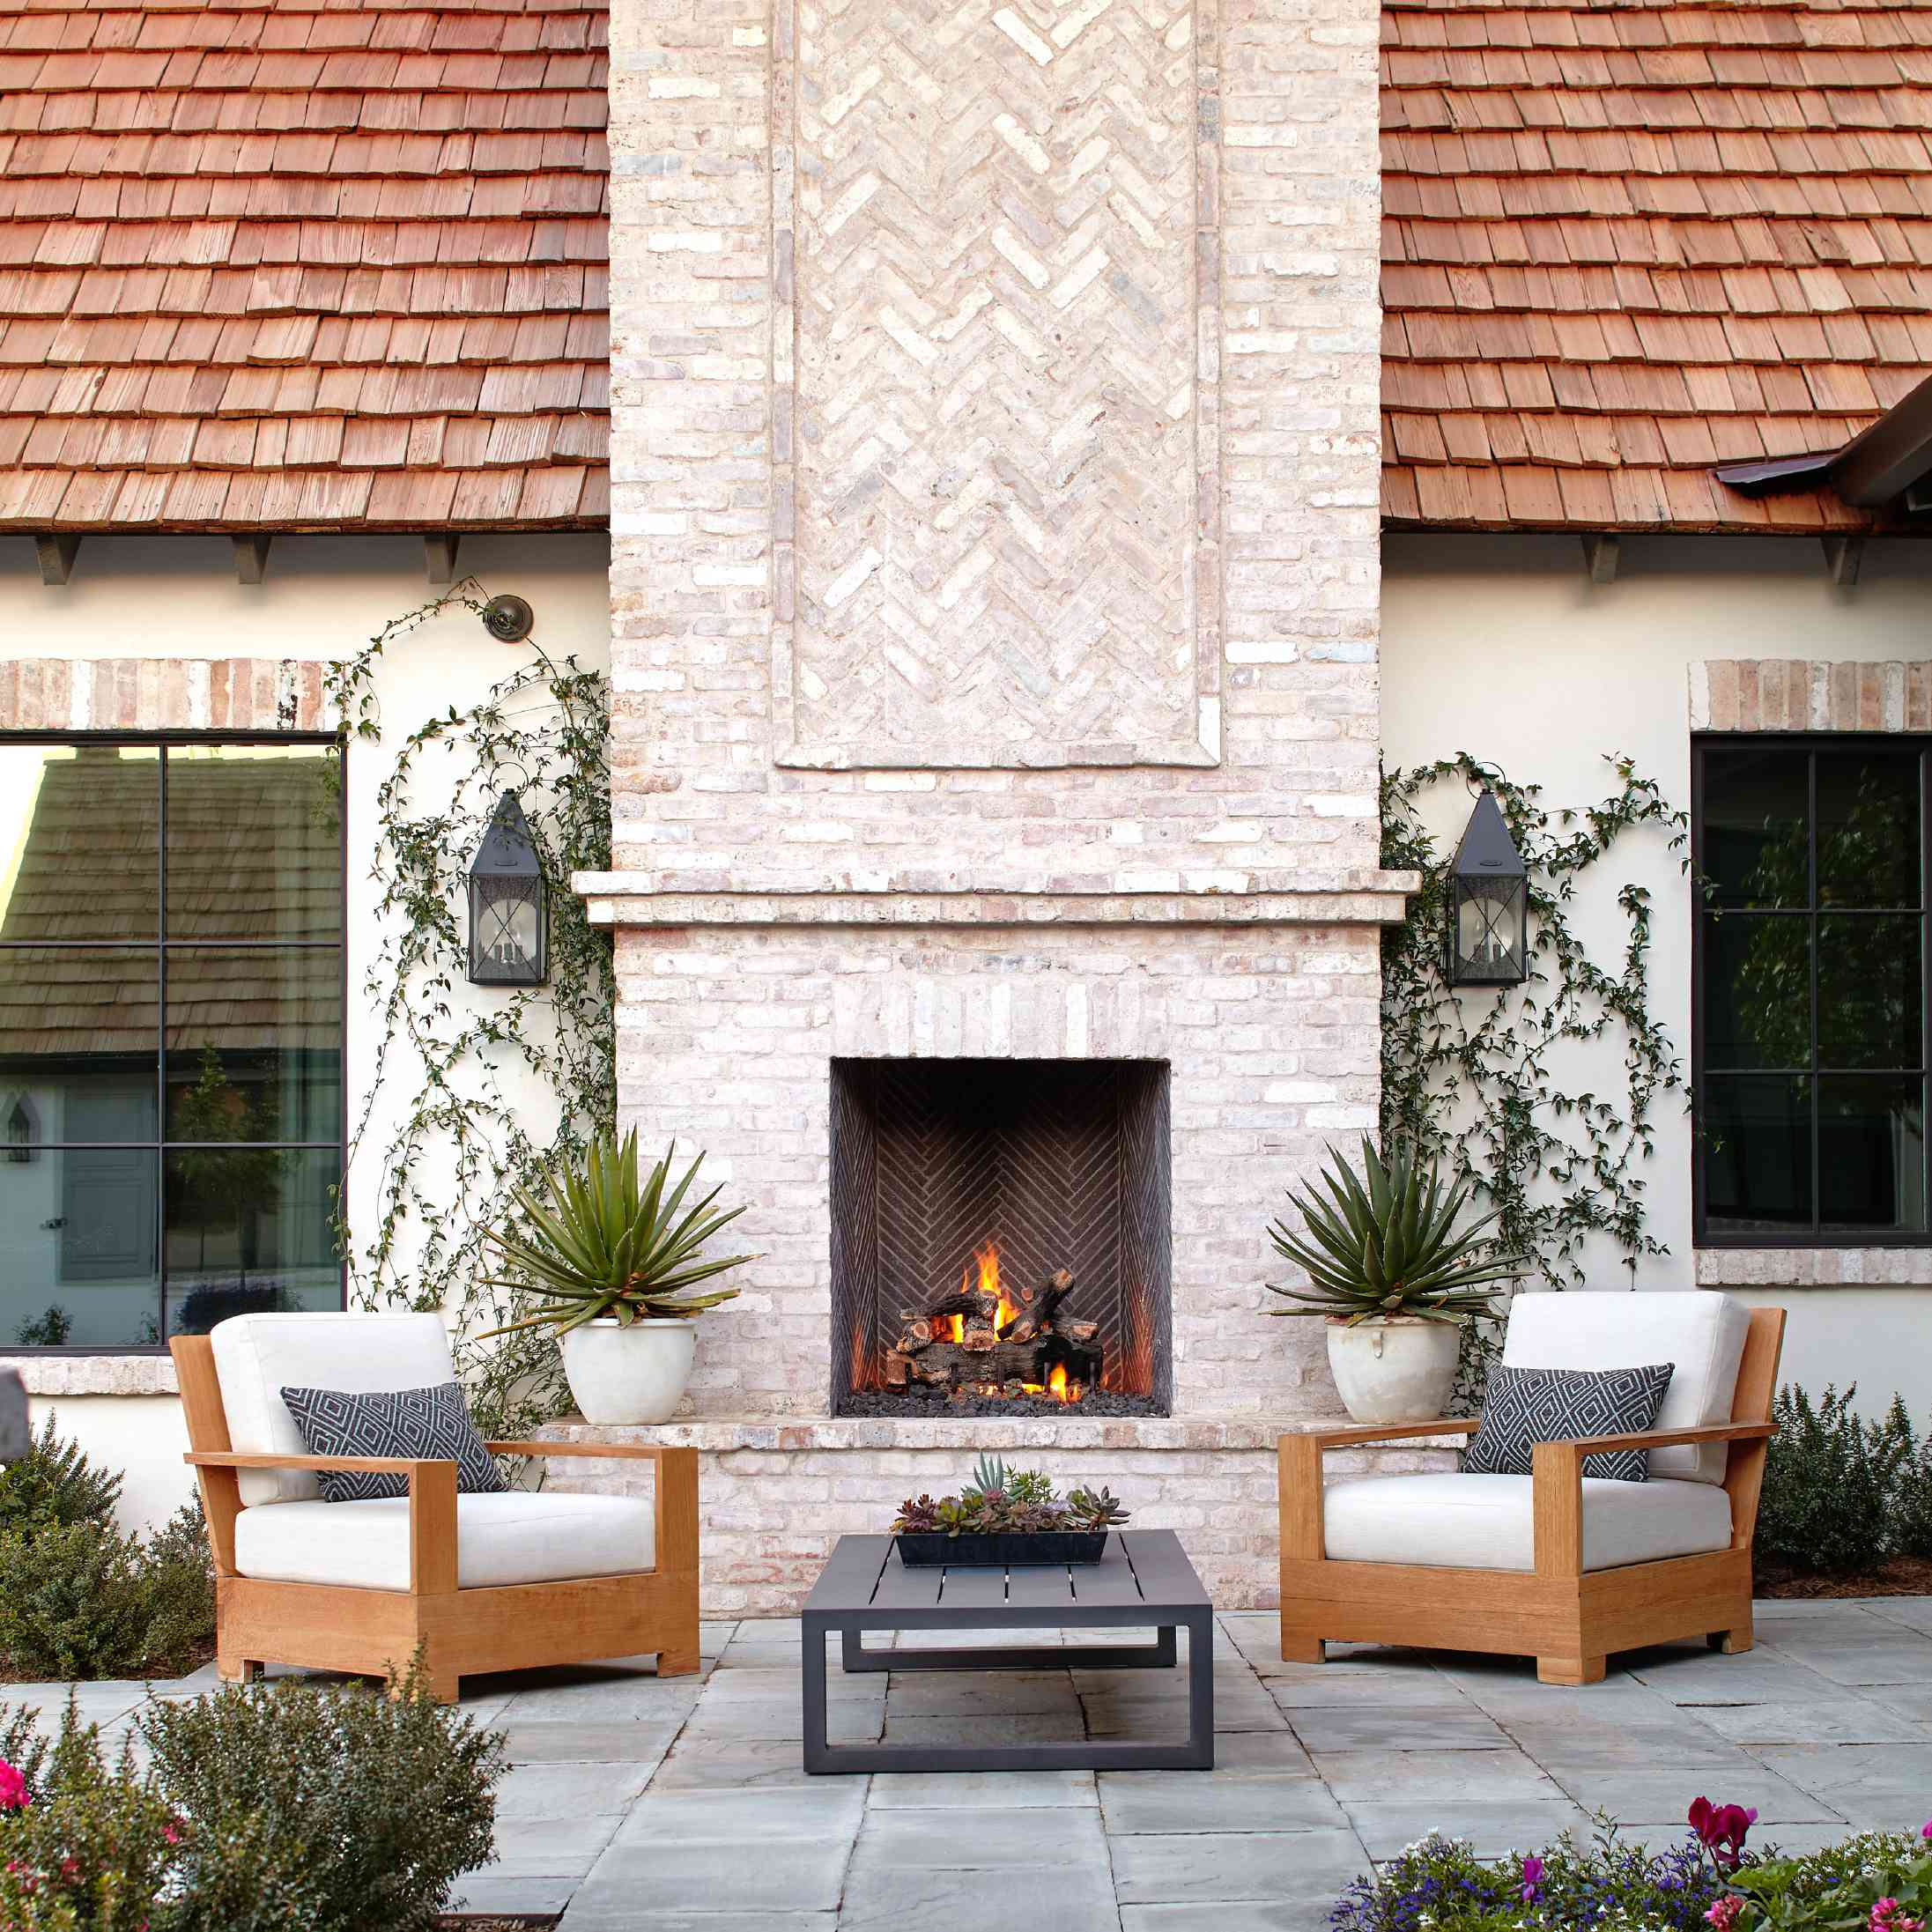 An outdoor fireplace with an extra-tall chimney, built directly against a home